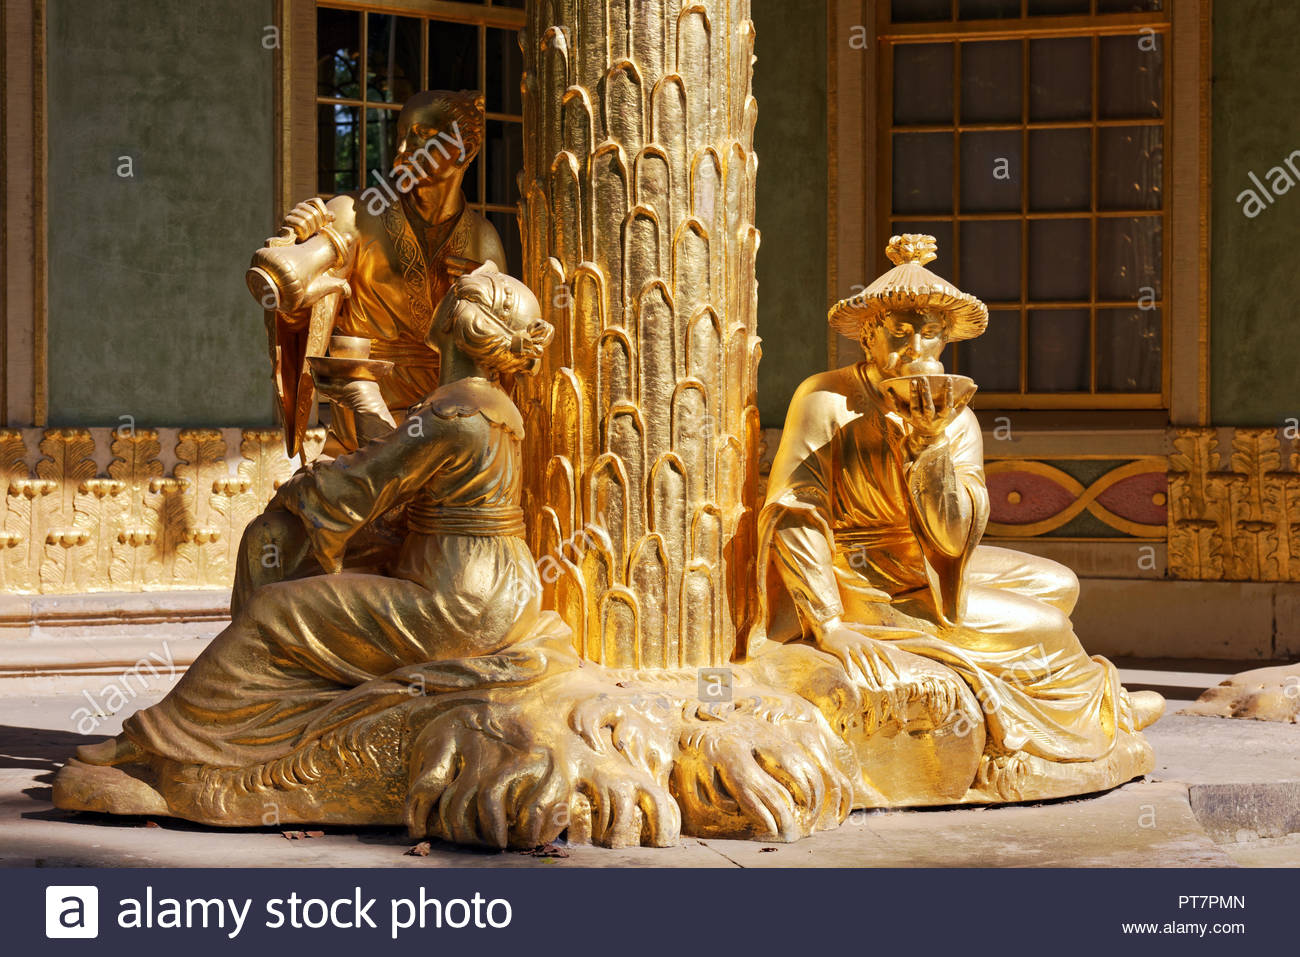 Potsdam, Germany - September 12, 2018: Gilt sculptures at Chinese House in Sanssouci Park. The park is the part of UNESCO World Heritage site since 19 - Stock Image